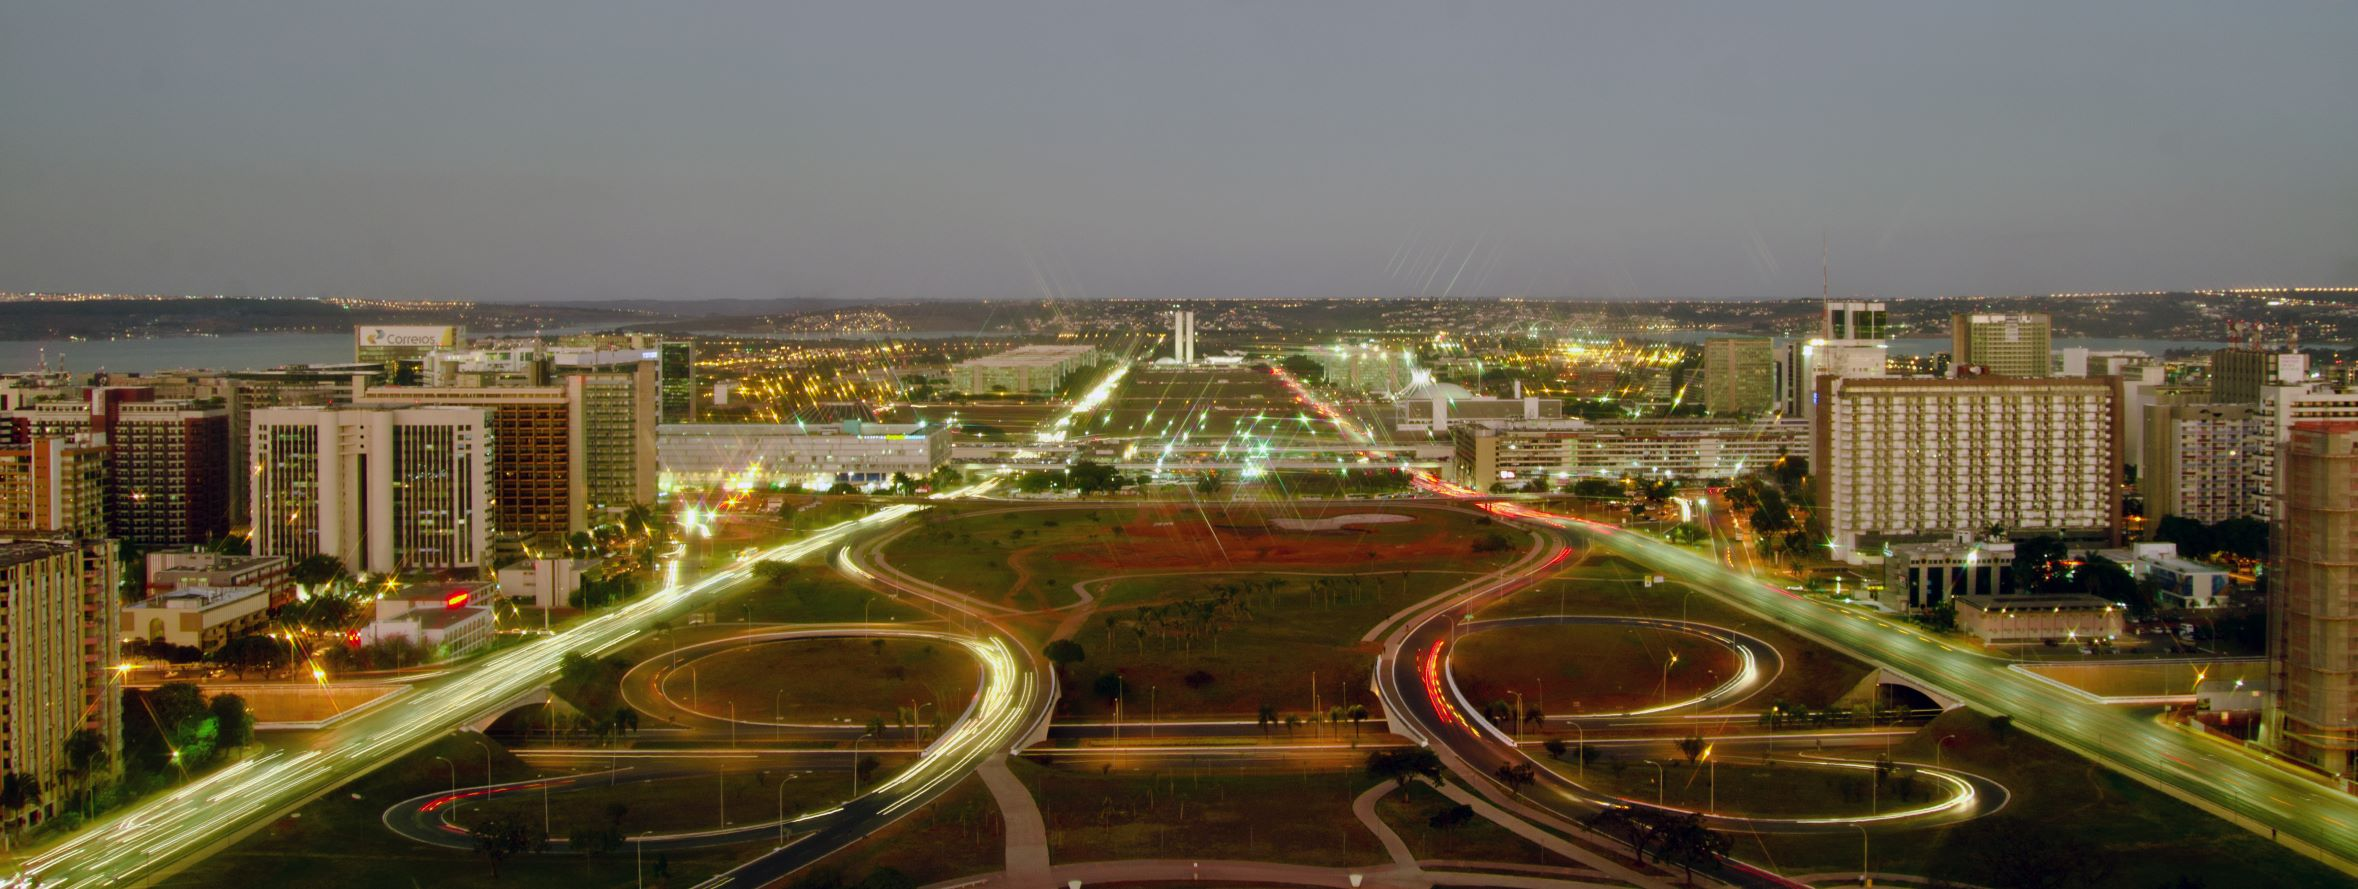 Photo of Brasilia at night. USTDA awarded a grant to the Brazilian Association of Electricity Distributors (ABRADEE) for technical assistance to enable large-scale smart grid deployment throughout Brazil.